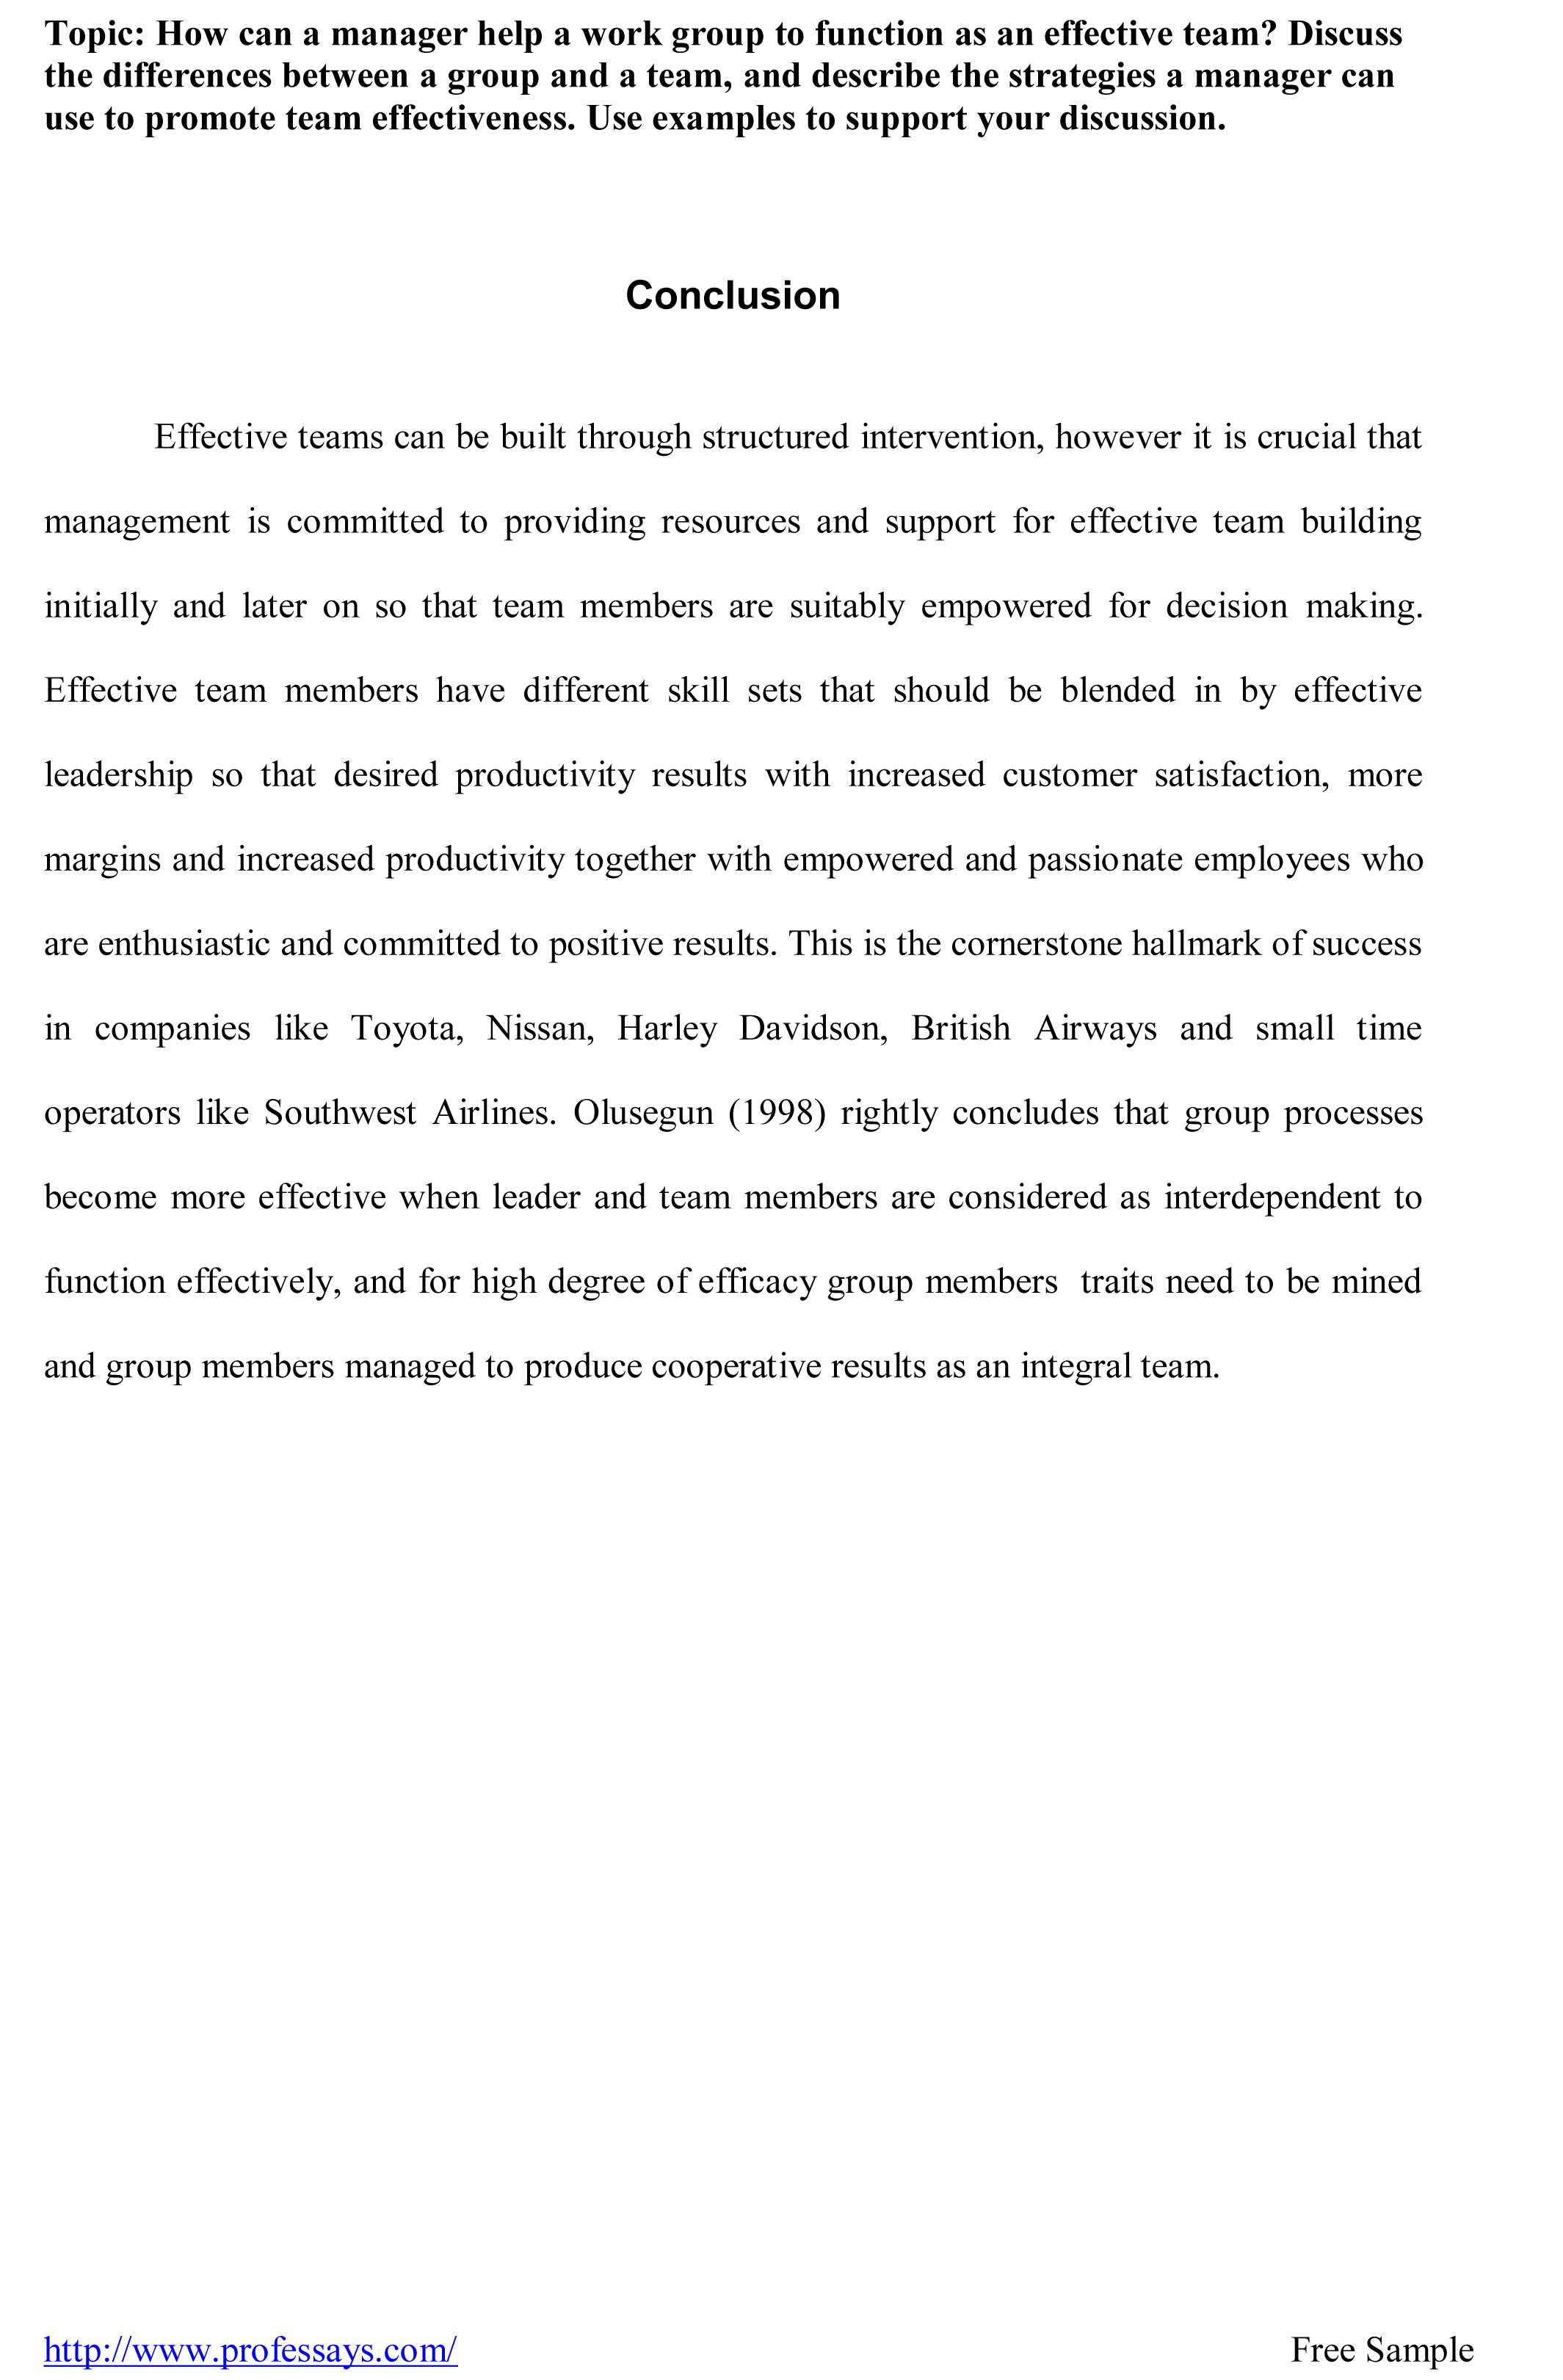 002 Research Paper Conclusion Sample For Marvelous About Smoking Generator On Teenage Pregnancy Full